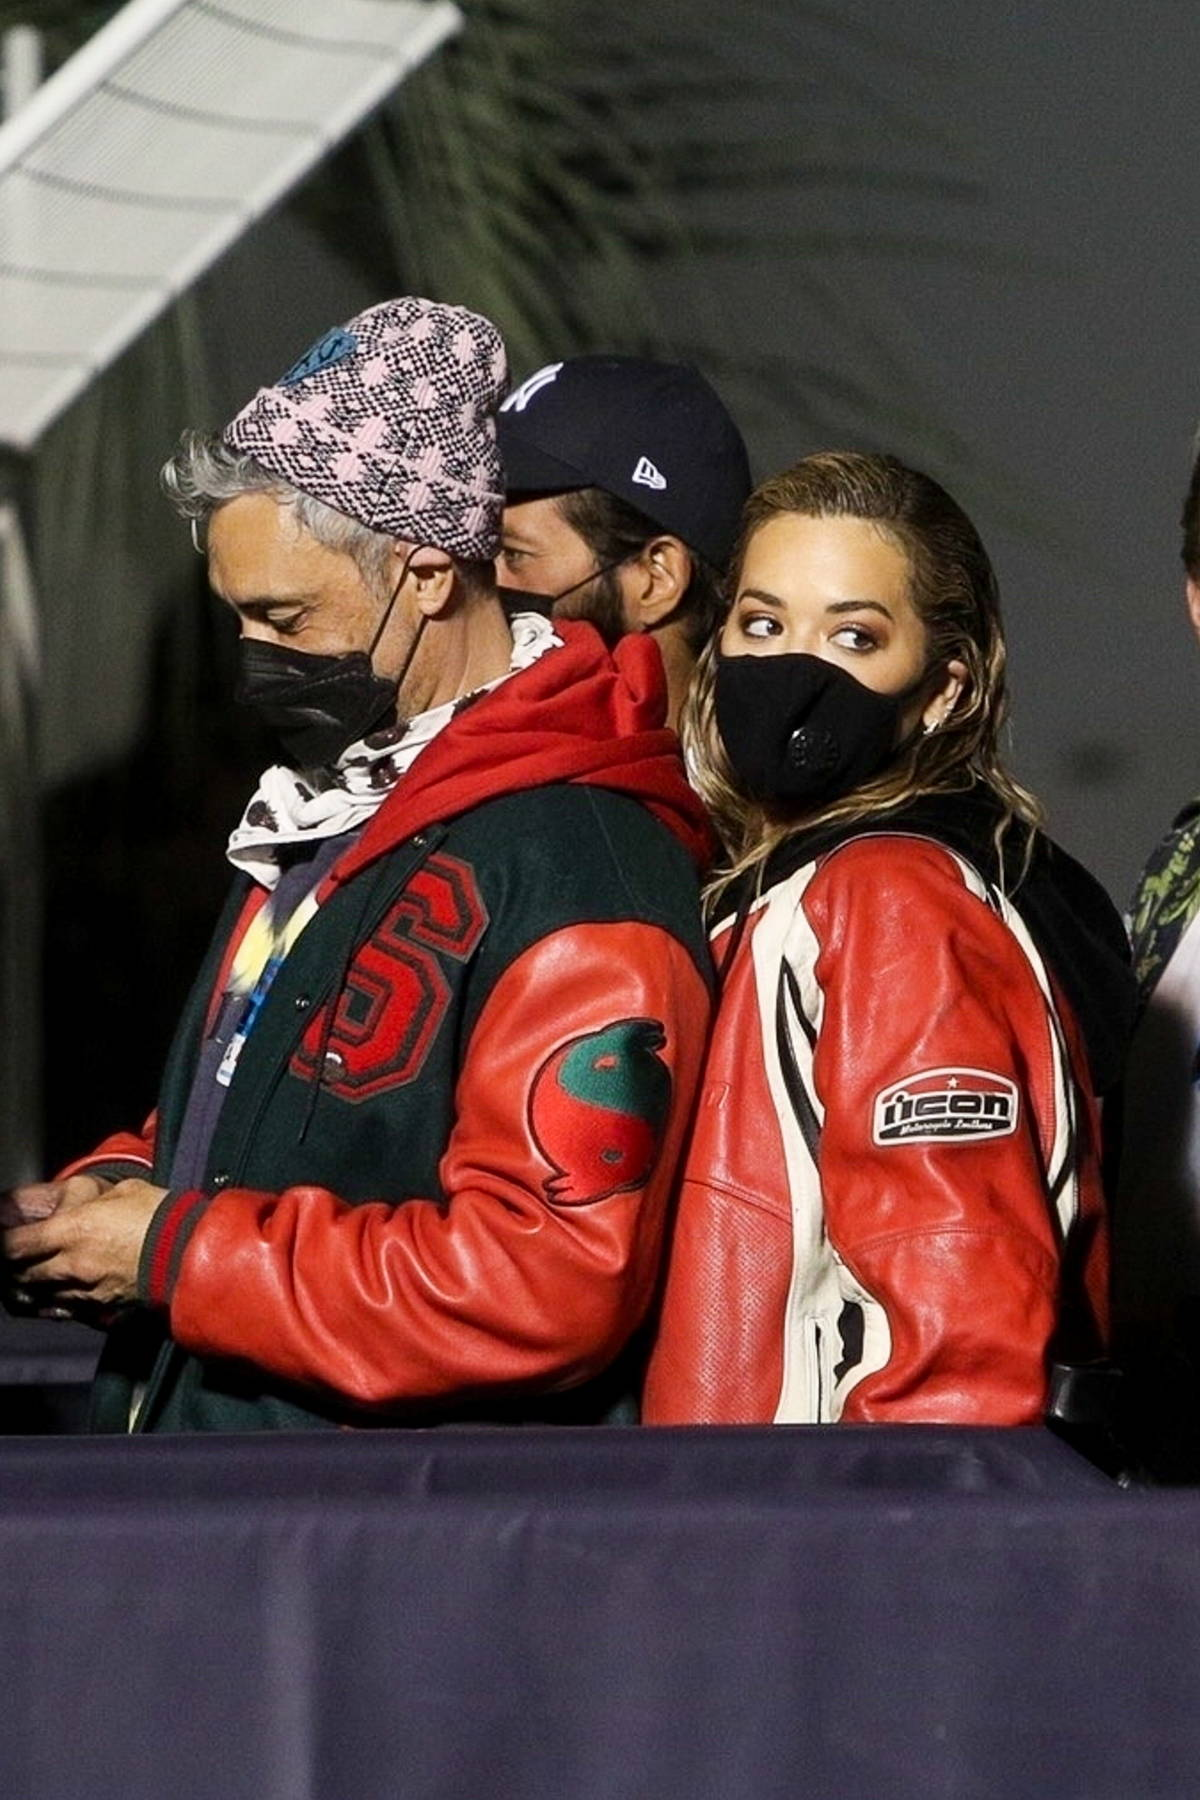 Rita Ora and Taika Waititi wait in the VIP line at The Rolling Stones concert in Los Angeles